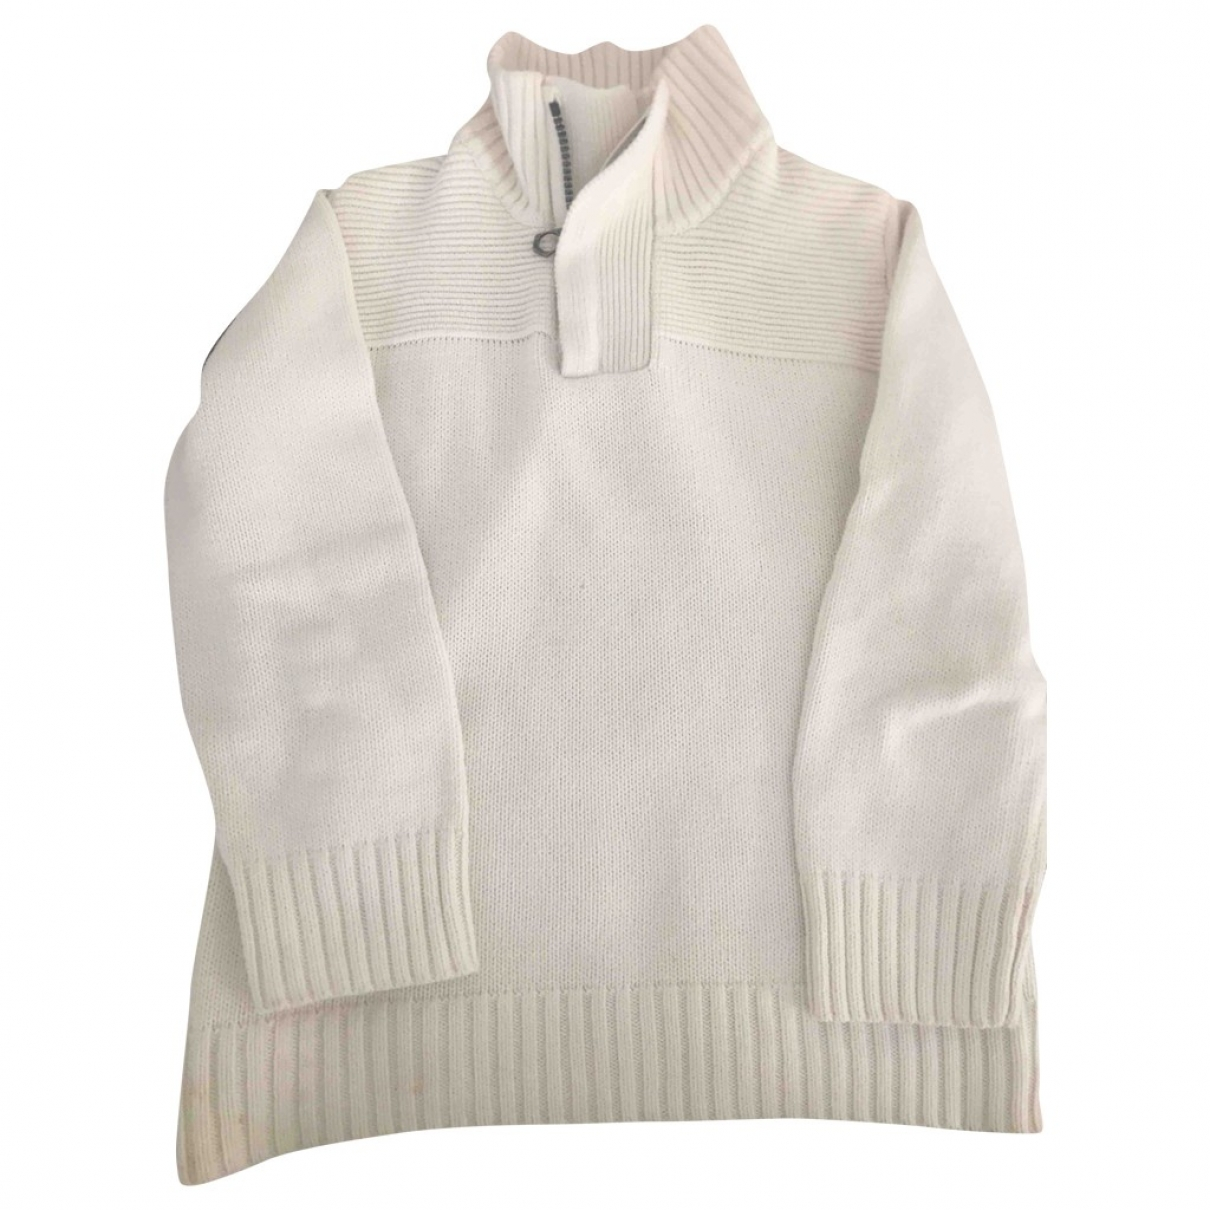 Zara \N White Cotton Knitwear for Kids 5 years - up to 108cm FR